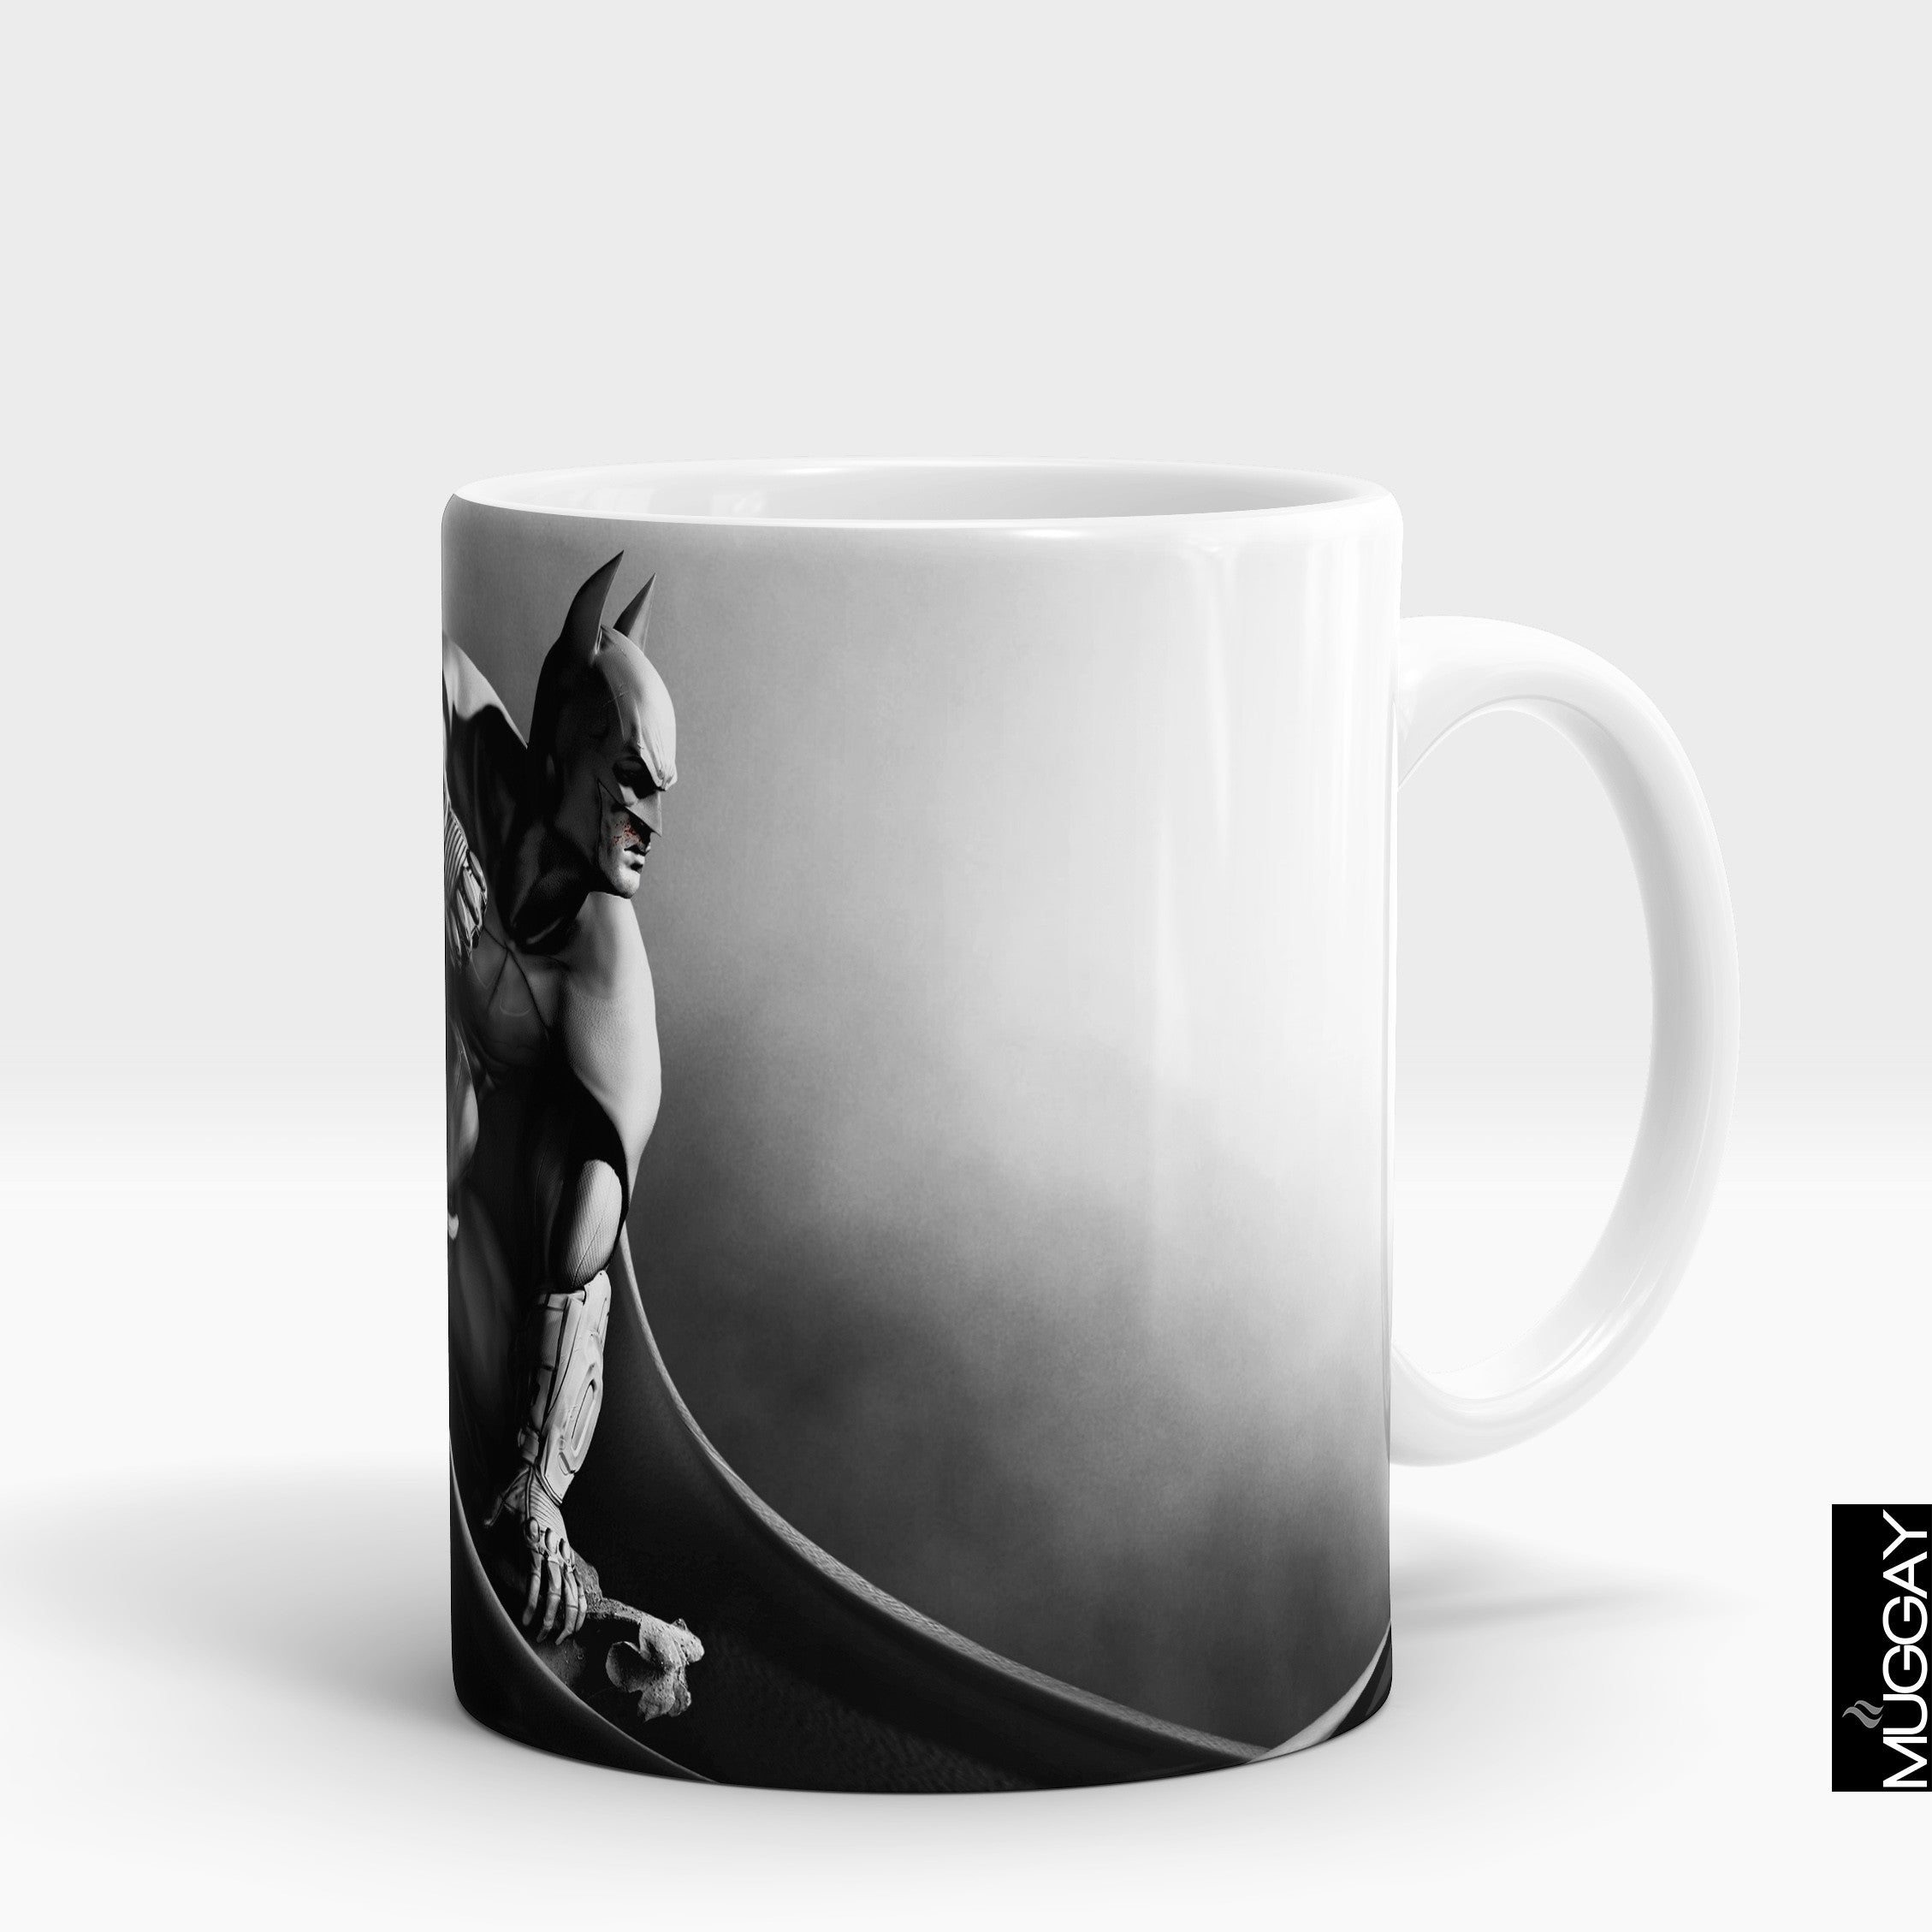 Batman Design Mugs - bm2 - Muggay.com - Mugs - Printing shop - truck Art mugs - Mug printing - Customized printing - Digital printing - Muggay